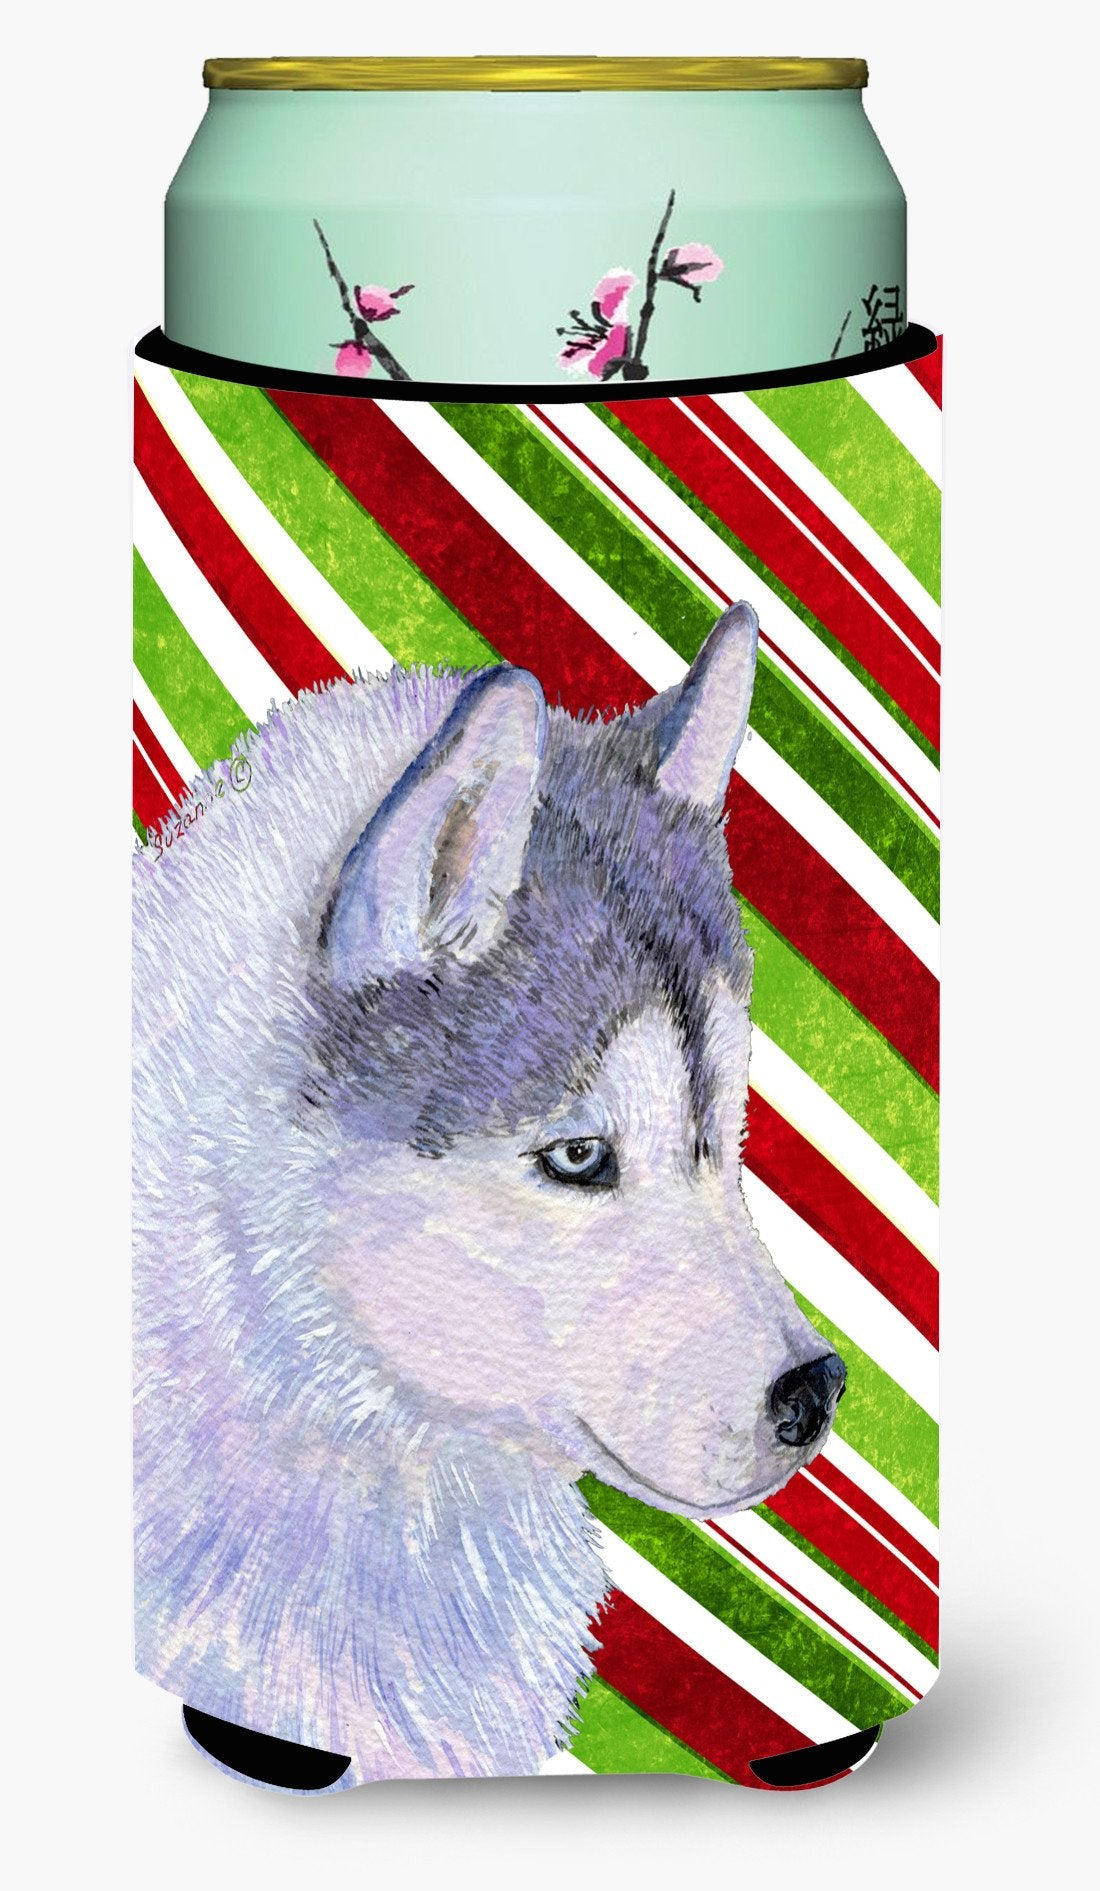 Siberian Husky Candy Cane Holiday Christmas  Tall Boy Beverage Insulator Beverage Insulator Hugger by Caroline's Treasures